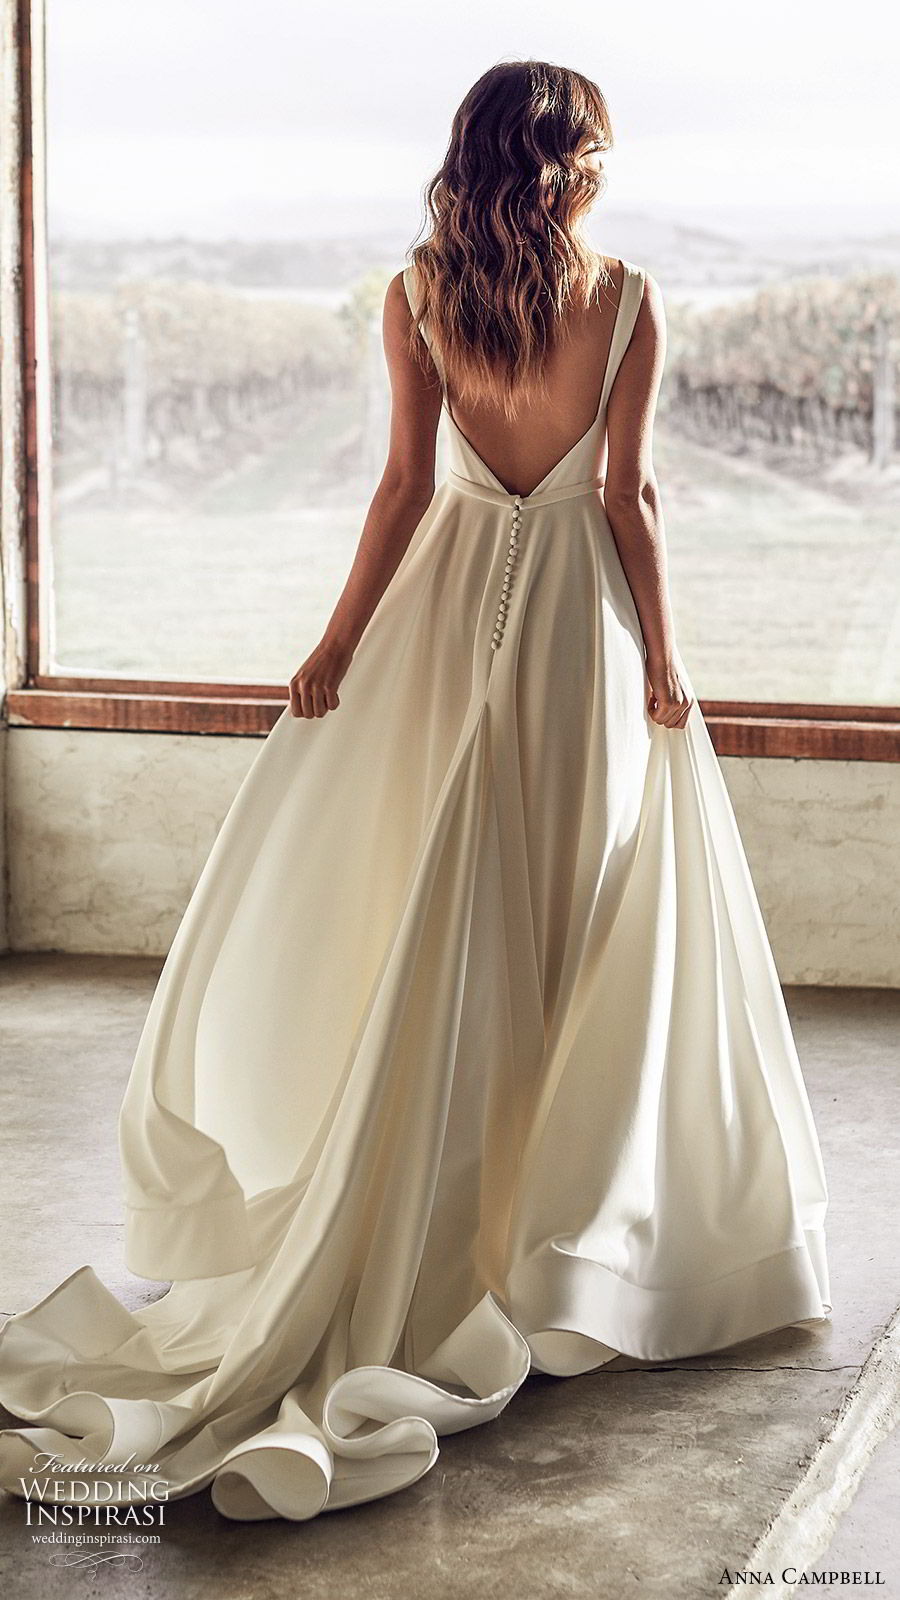 anna campbell 2020 bridal sleeveless thick straps plunging v neckline minimally embellished ball gown a line wedding dress (6) clean modern low v back chapel train bv